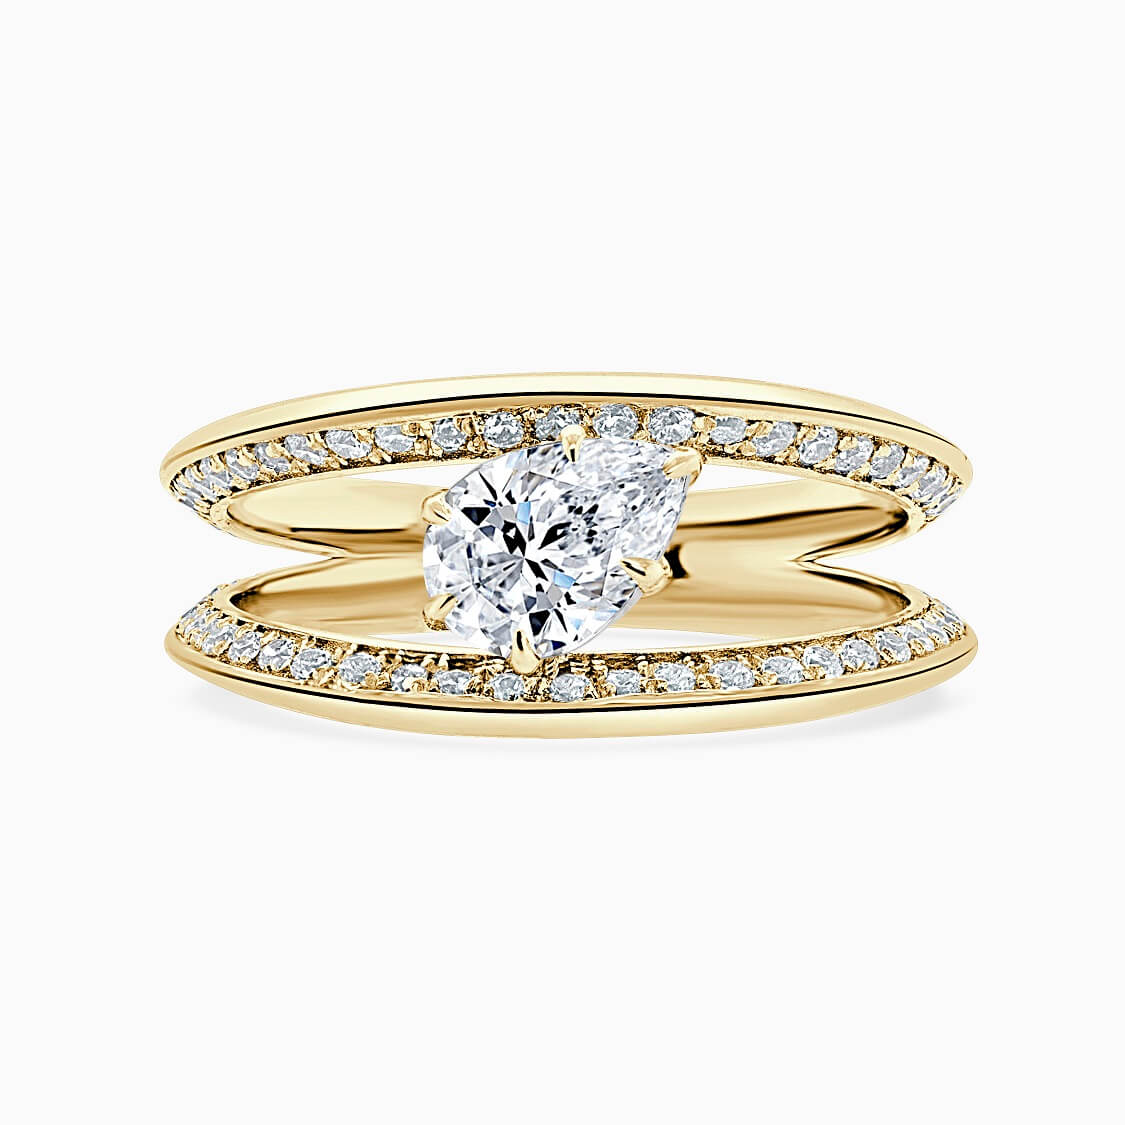 18ct Yellow Gold Pear Shape 6 Claw With Double Pave Band Engagement Ring